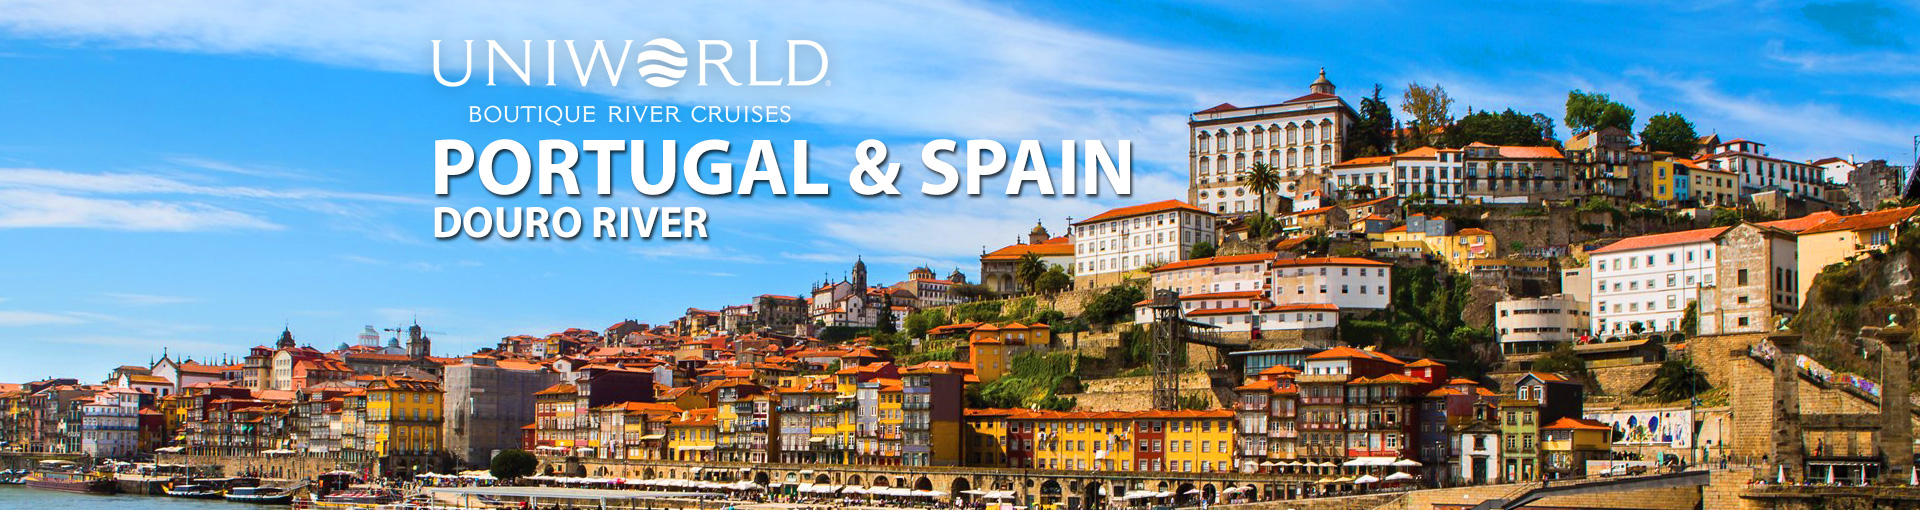 Uniworld River Cruises to Portugal and Spain